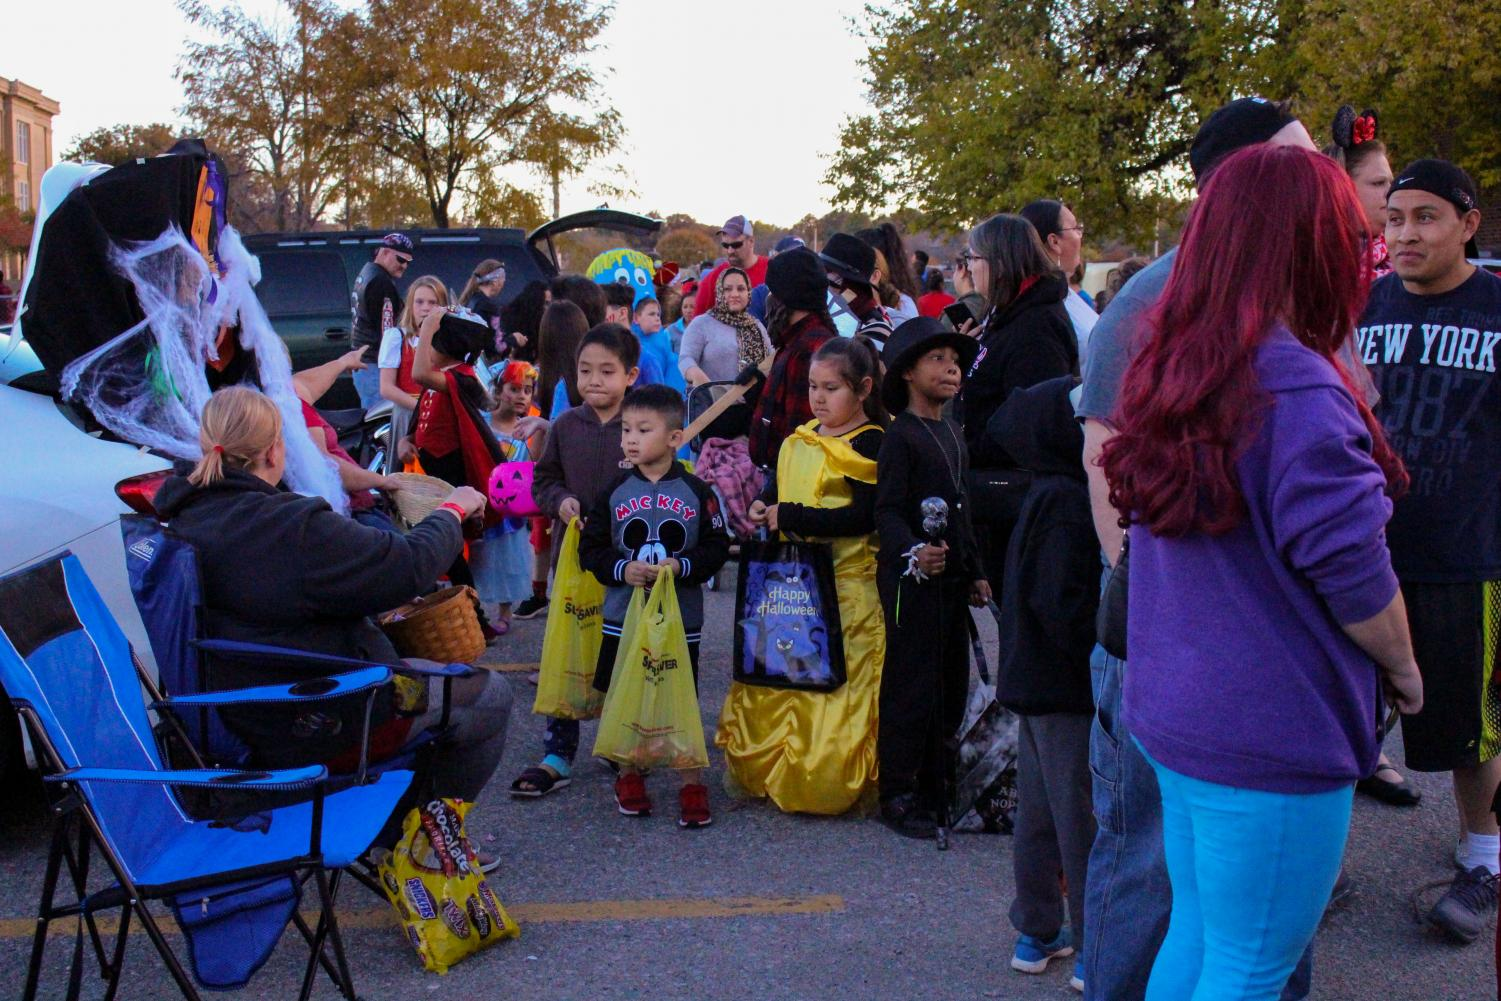 Kids from all around Lincoln attend Trunk or Treat and receive candy on October 27th, 2018.